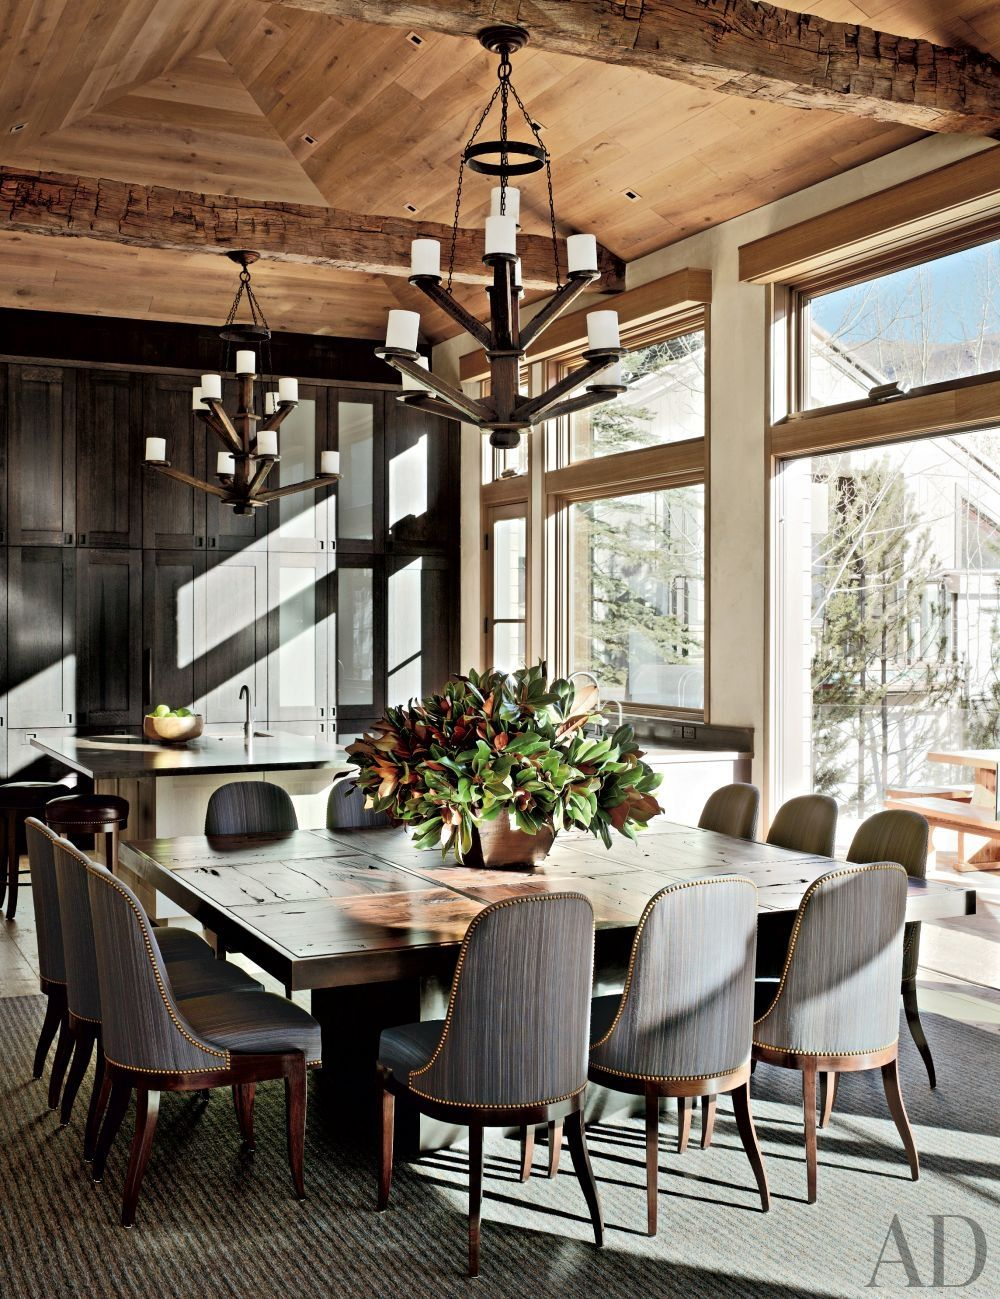 Design 3 People Room: Rustic Dining Room By Stephen Sills Assoc. And Menendez